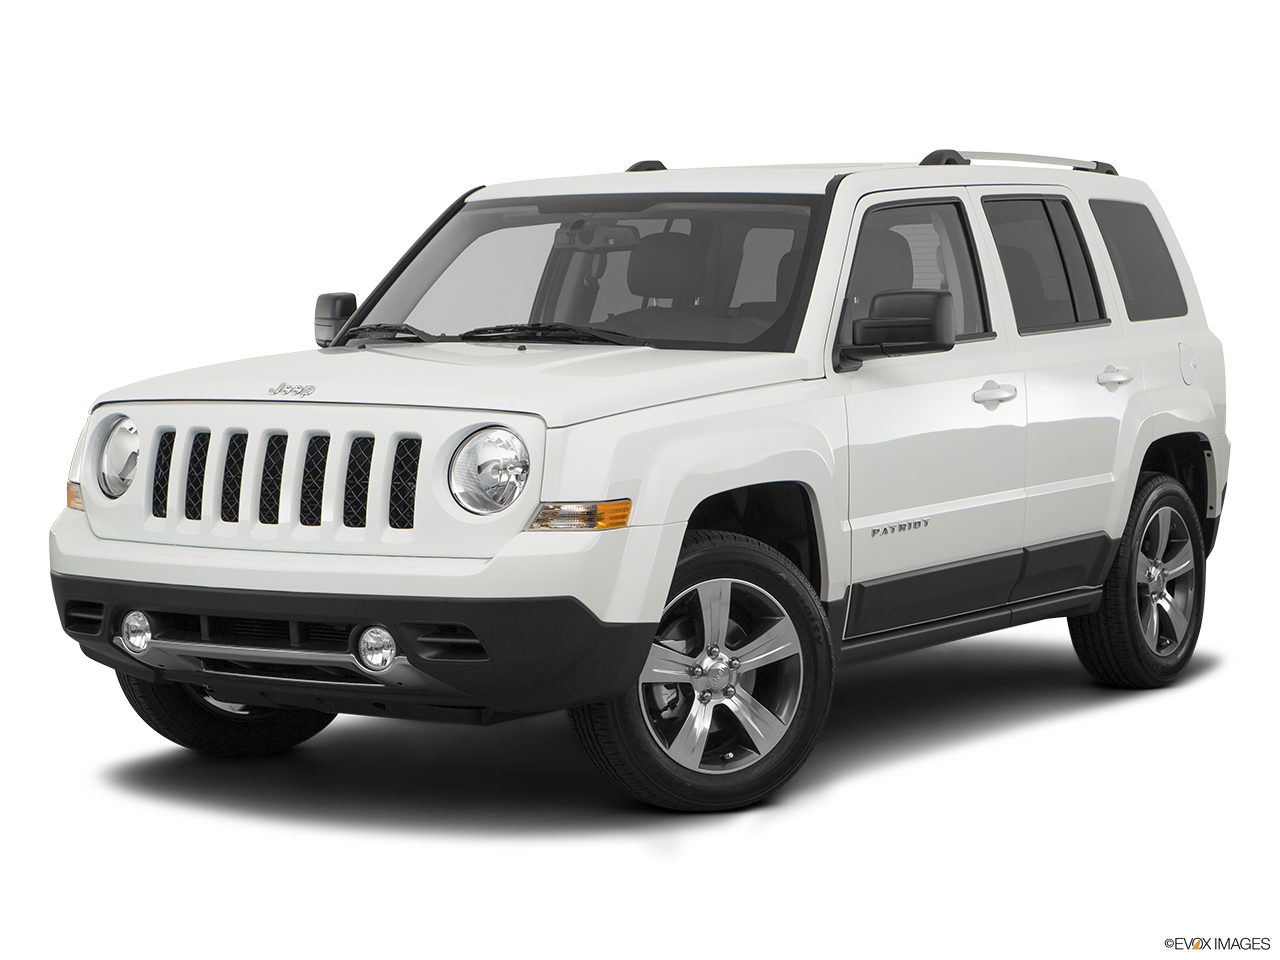 2017 jeep patriot for sale in philadelphia cherry hill dodge chrysler jeep ram. Black Bedroom Furniture Sets. Home Design Ideas